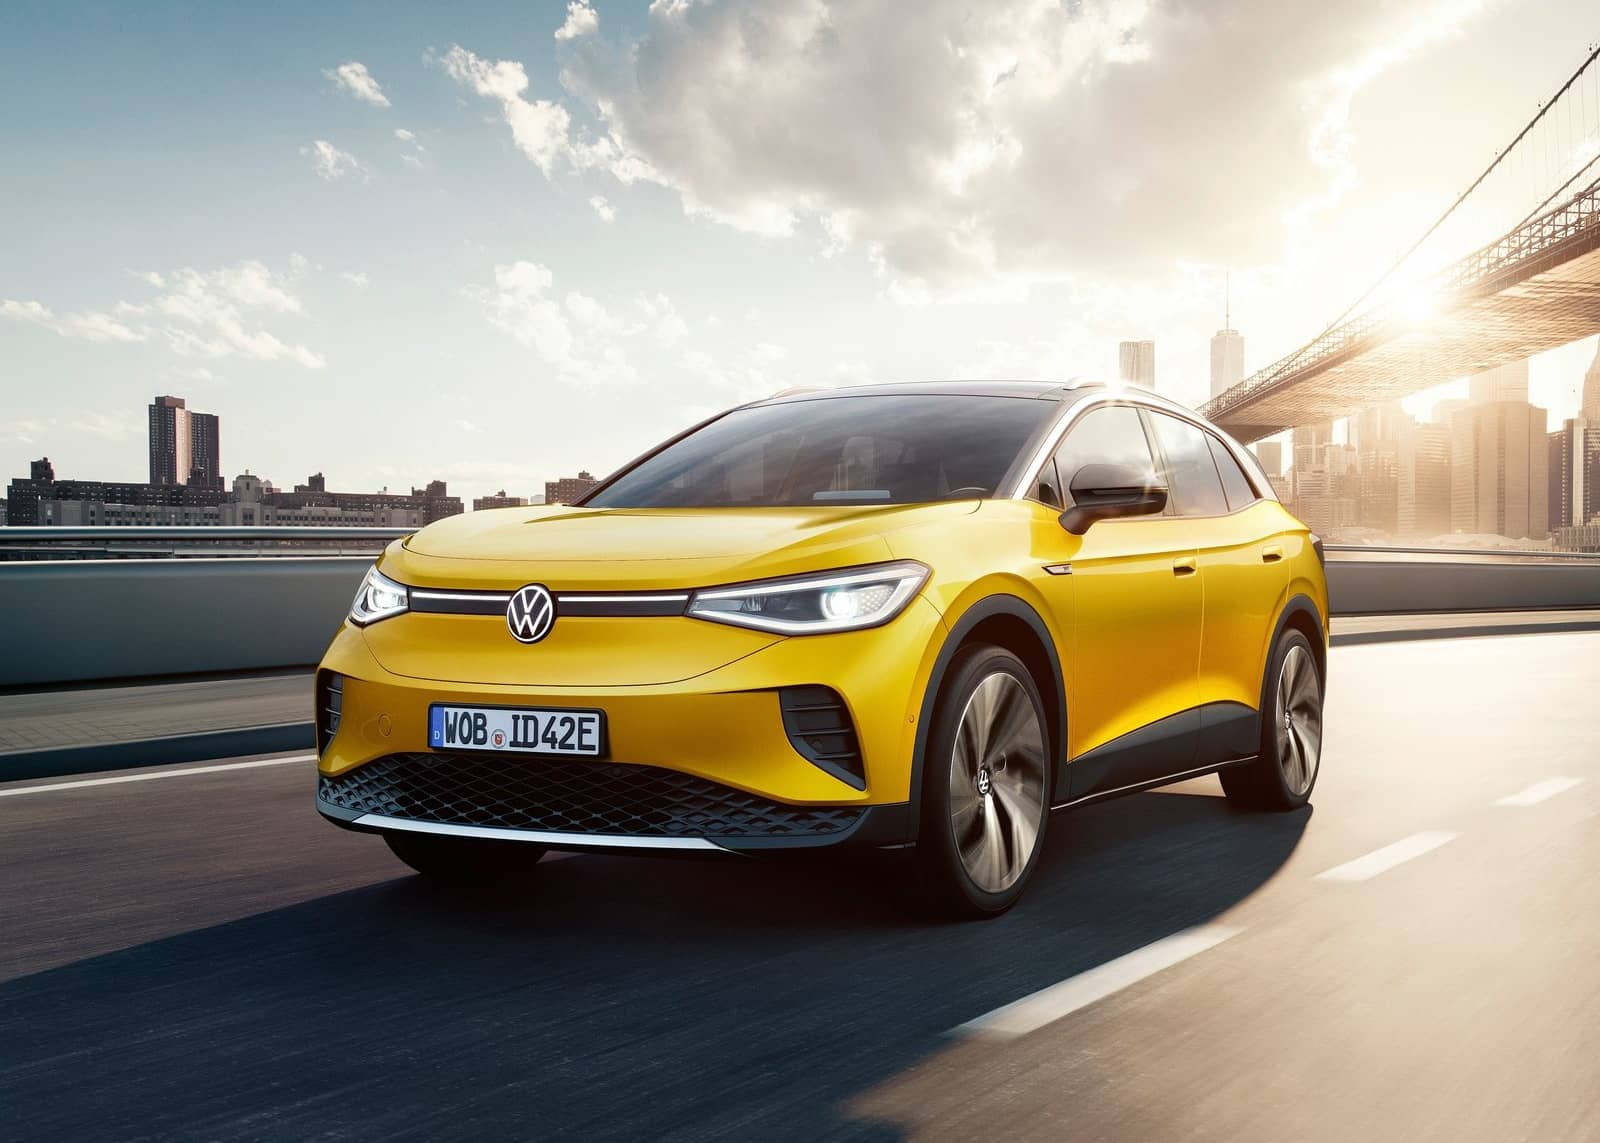 Volkswagen-ID.4_1st_Edition-2021-1600-0a